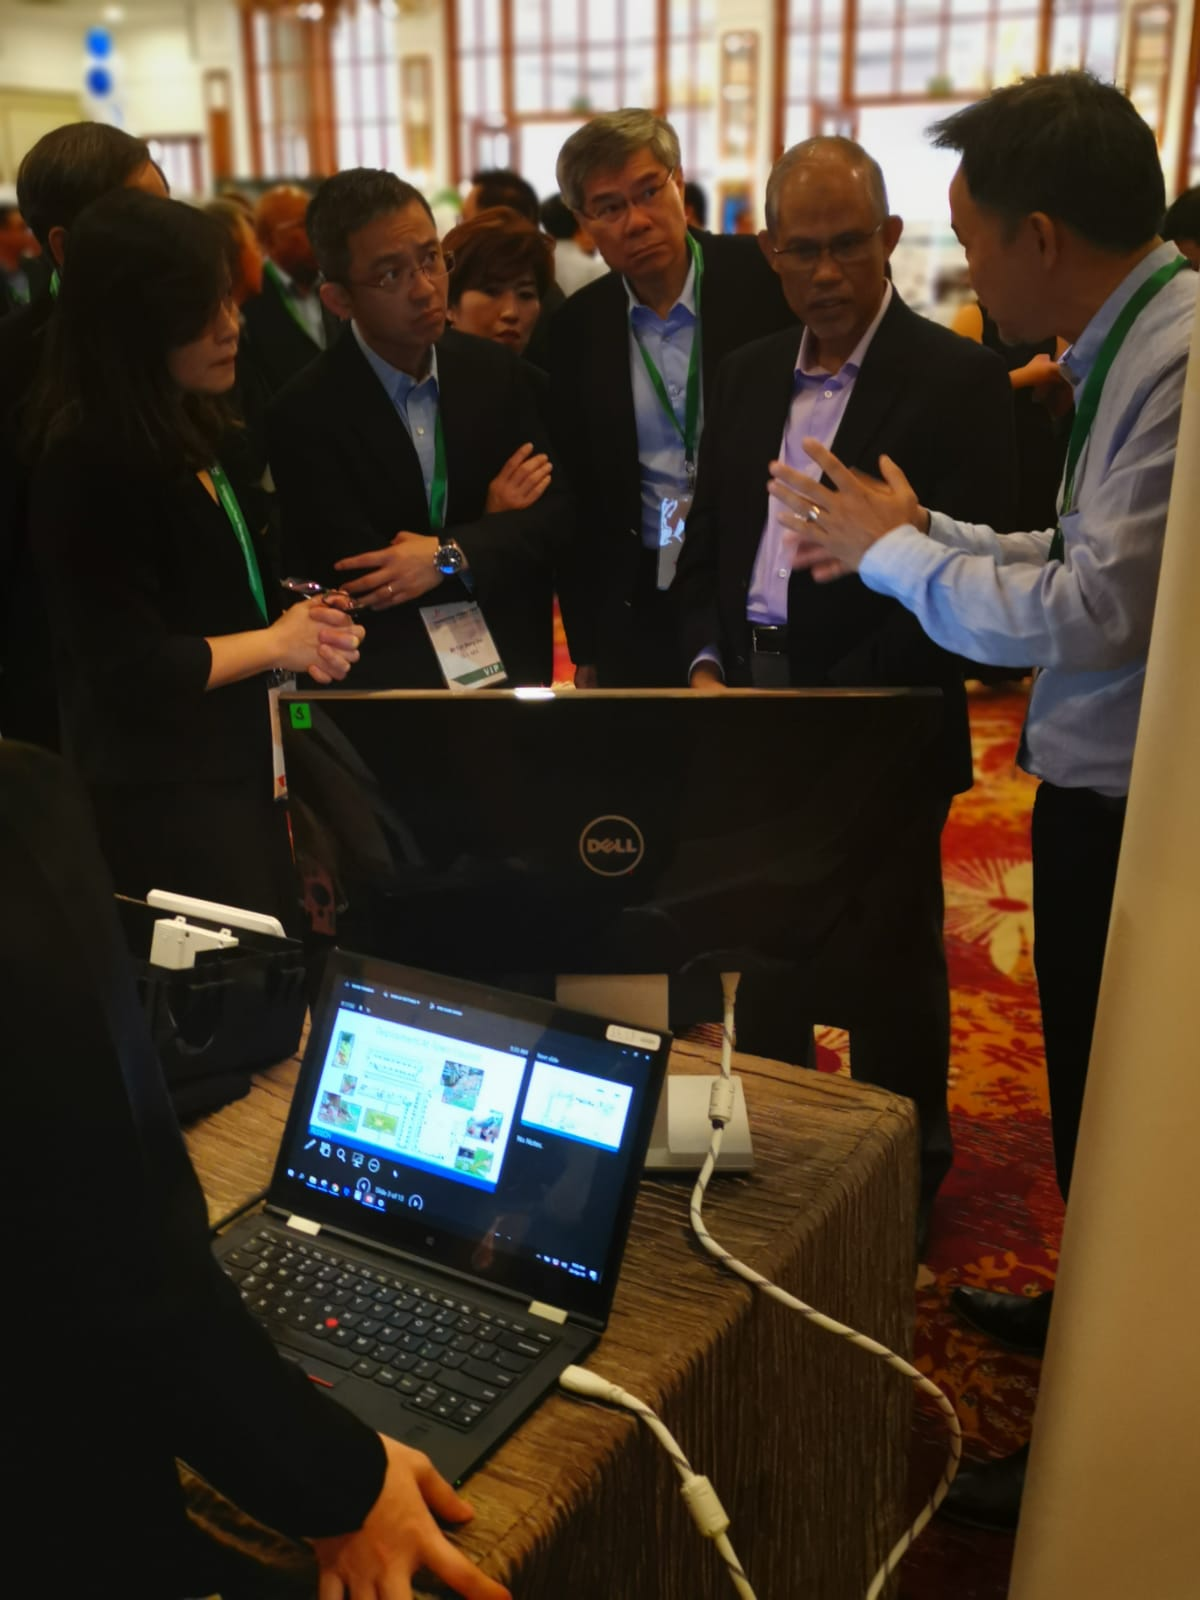 Feeling honoured to have Minister for the Environment and Water Resources, Mr Masagos Zulkifli, NEA CEO Mr. Tan Meng Dui and his team visited our booth at the Pest Management Forum